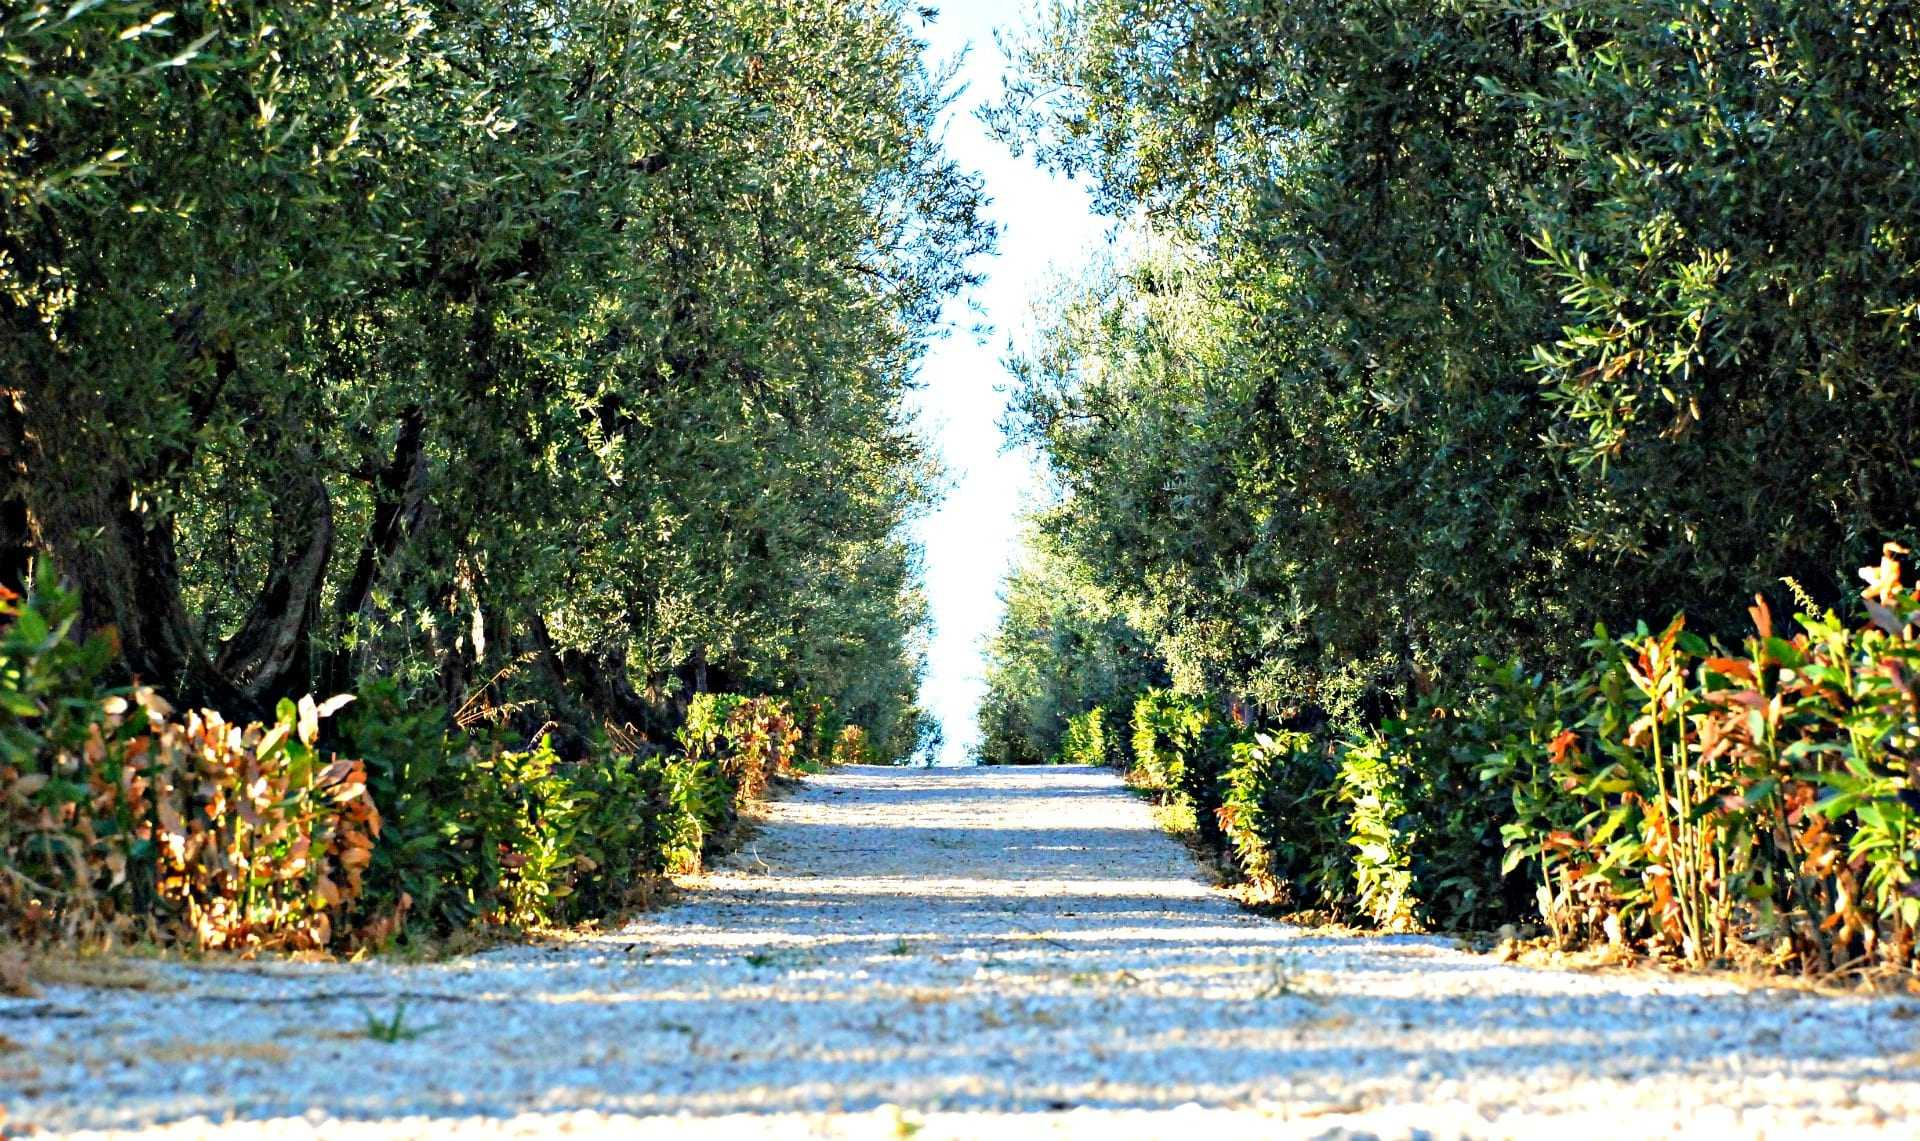 a-gold-standard-farm-in-umbria-promotes-research-on-sustainability-and-health